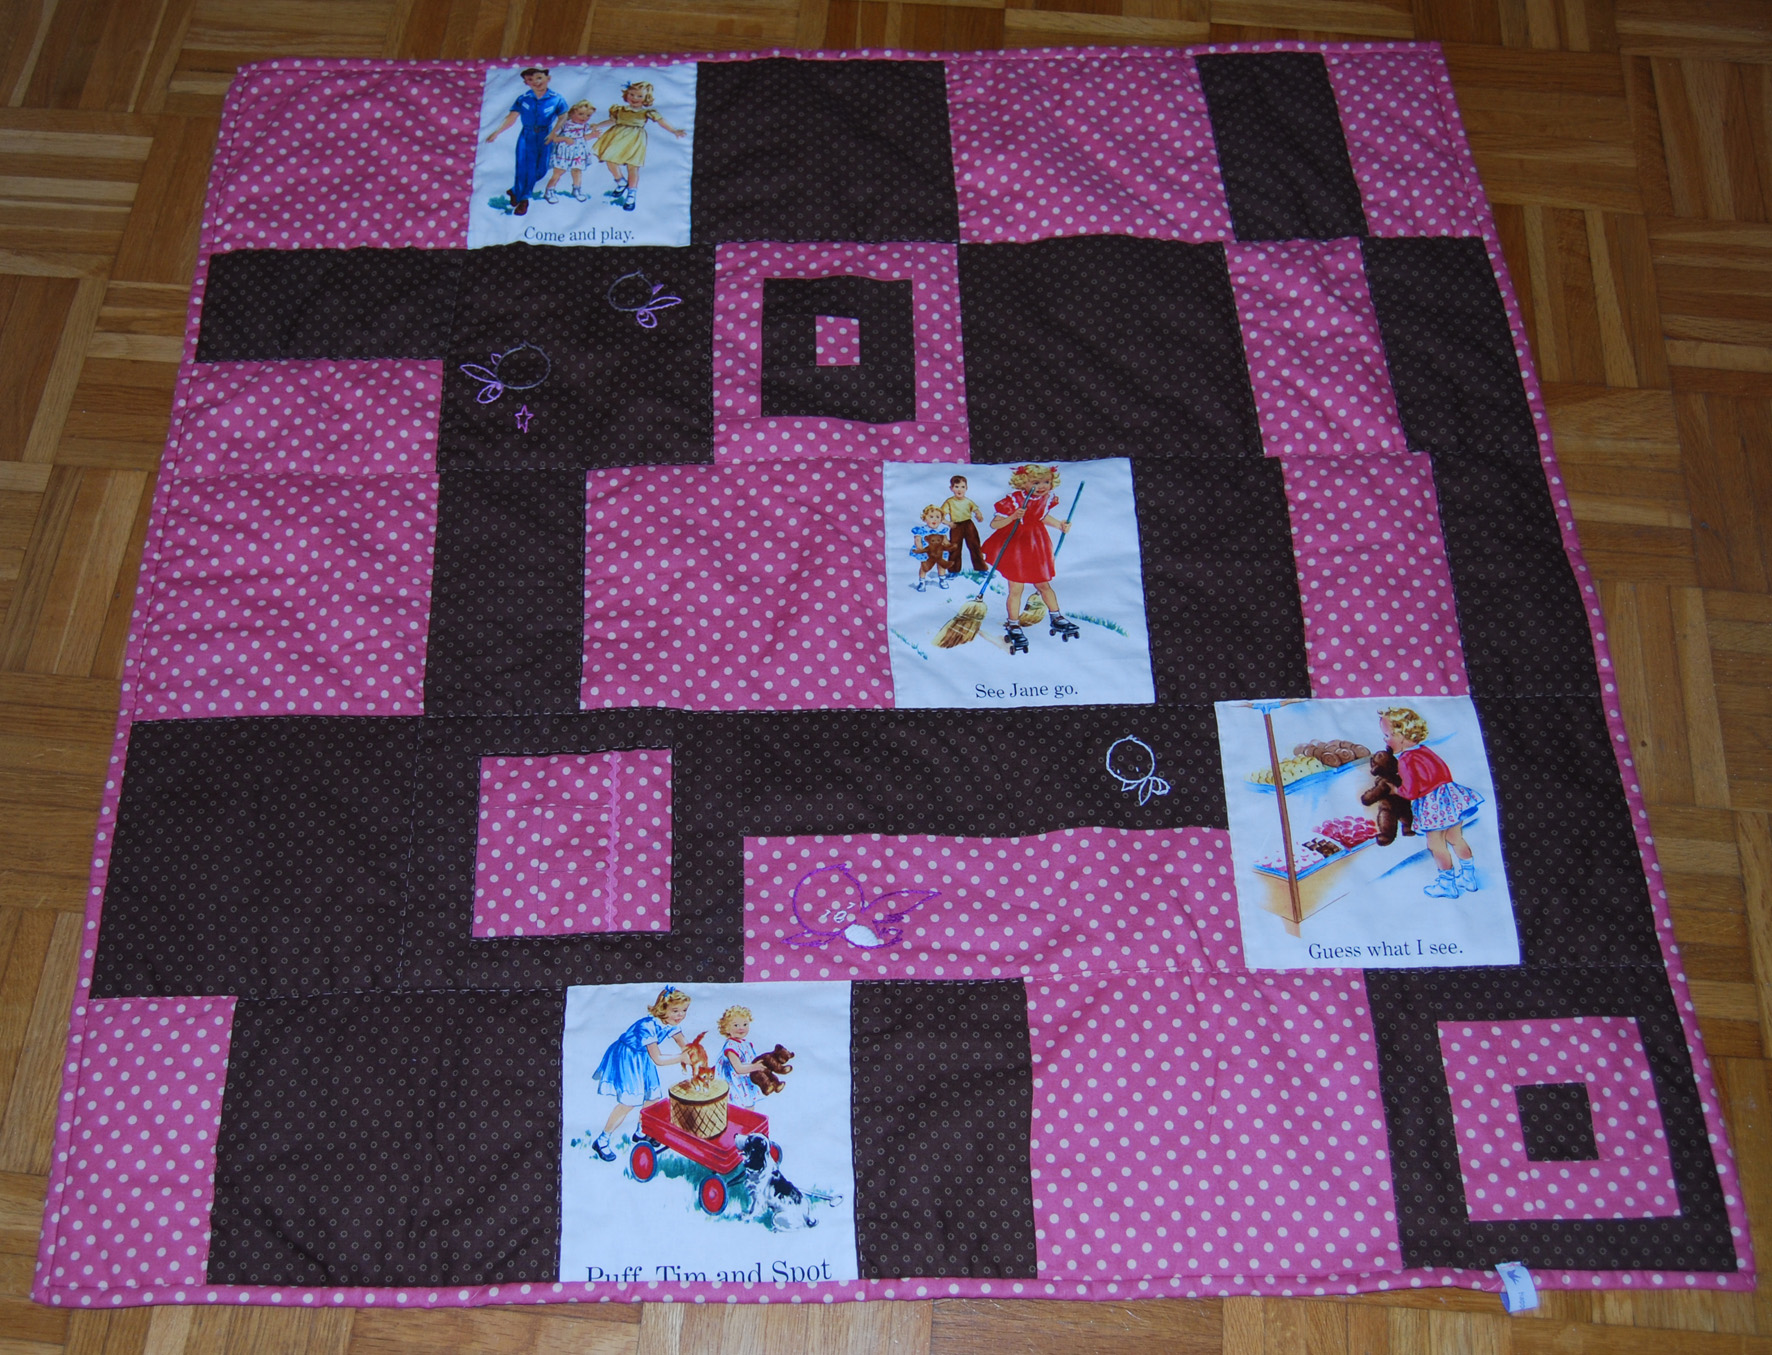 My first quilt – IT'S DONE!